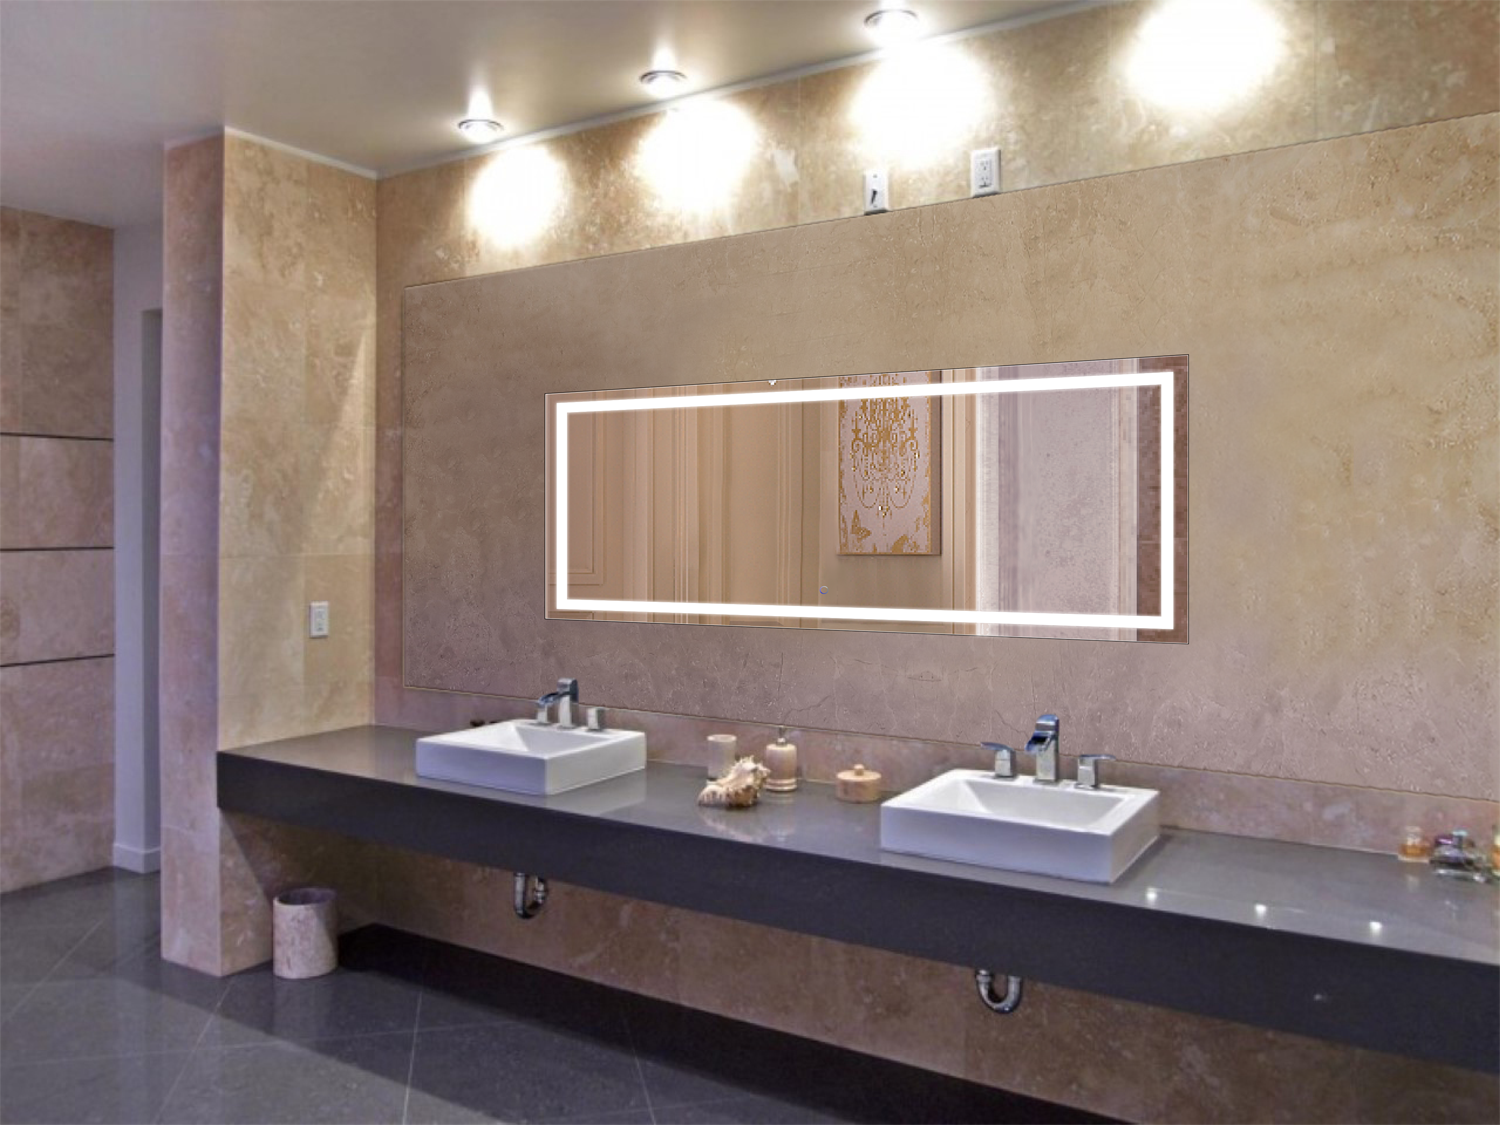 Lighted Mirror Bathroom Buy Bathroom Led Lighted Mirrors Backlit Mirrors Decoraport Usa Led: Icon 72″ X 30″ LED Bathroom Mirror W/ Dimmer & Defogger